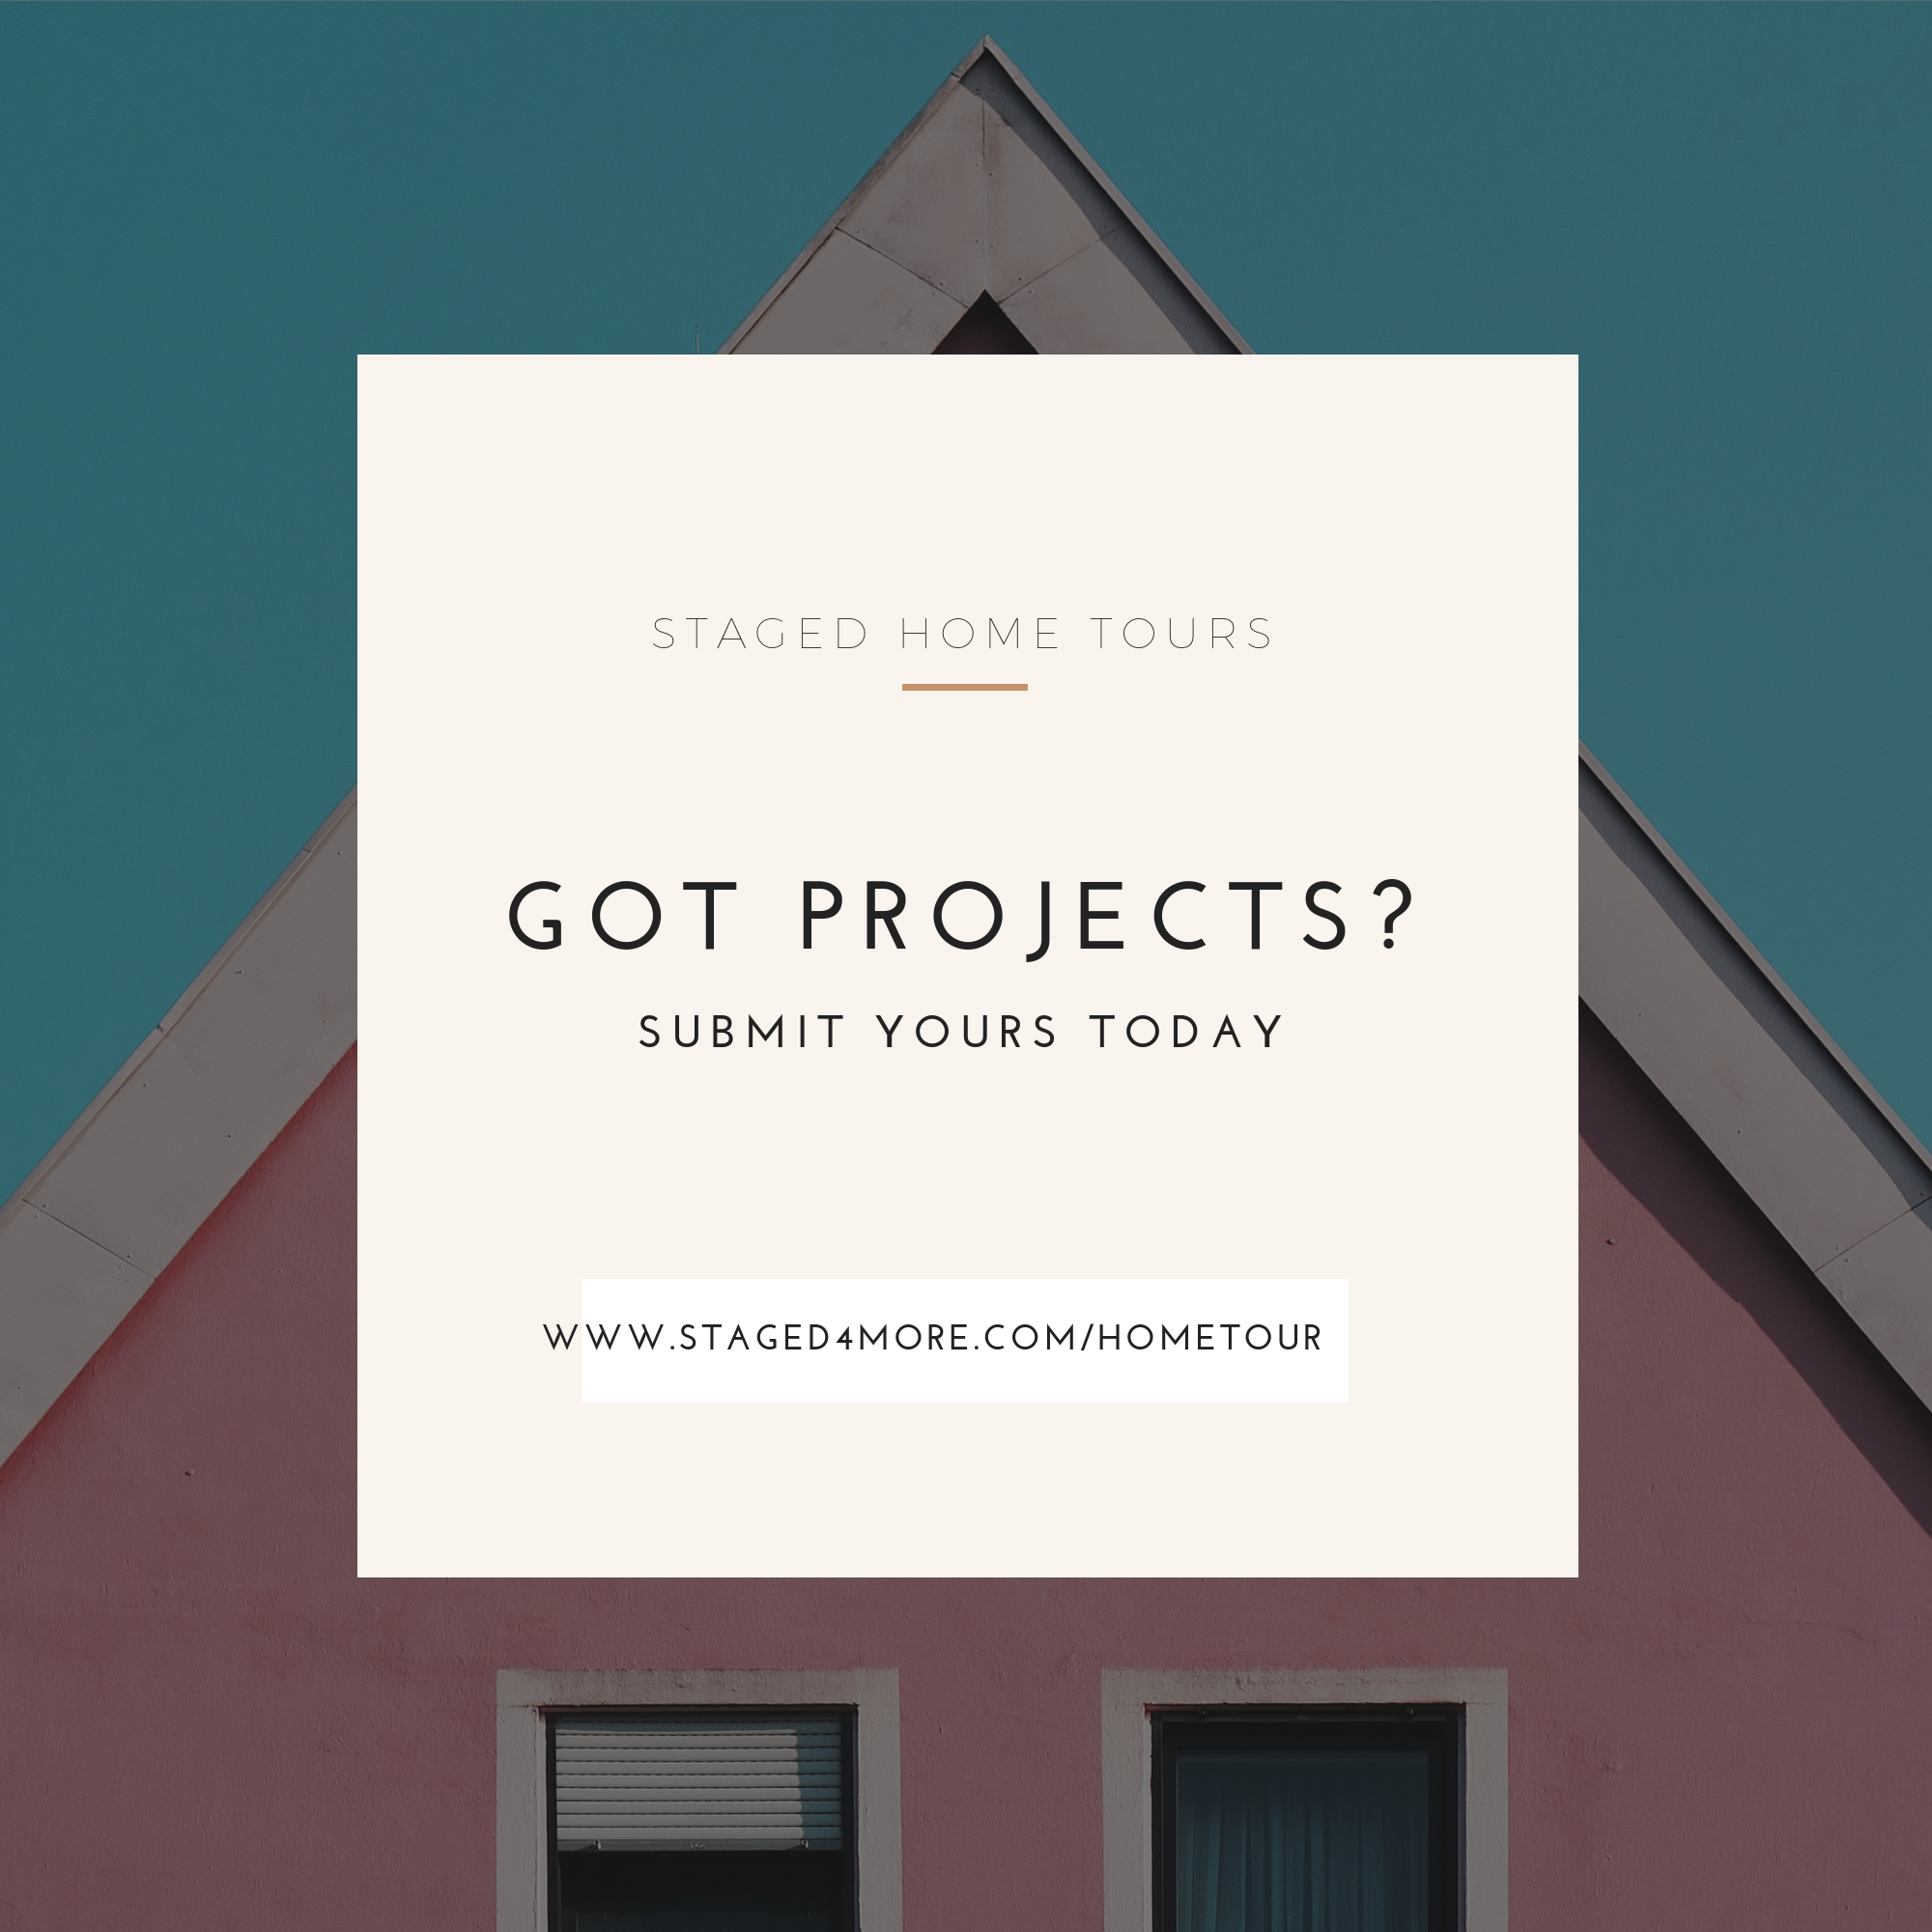 Submit your staged home project to be featured